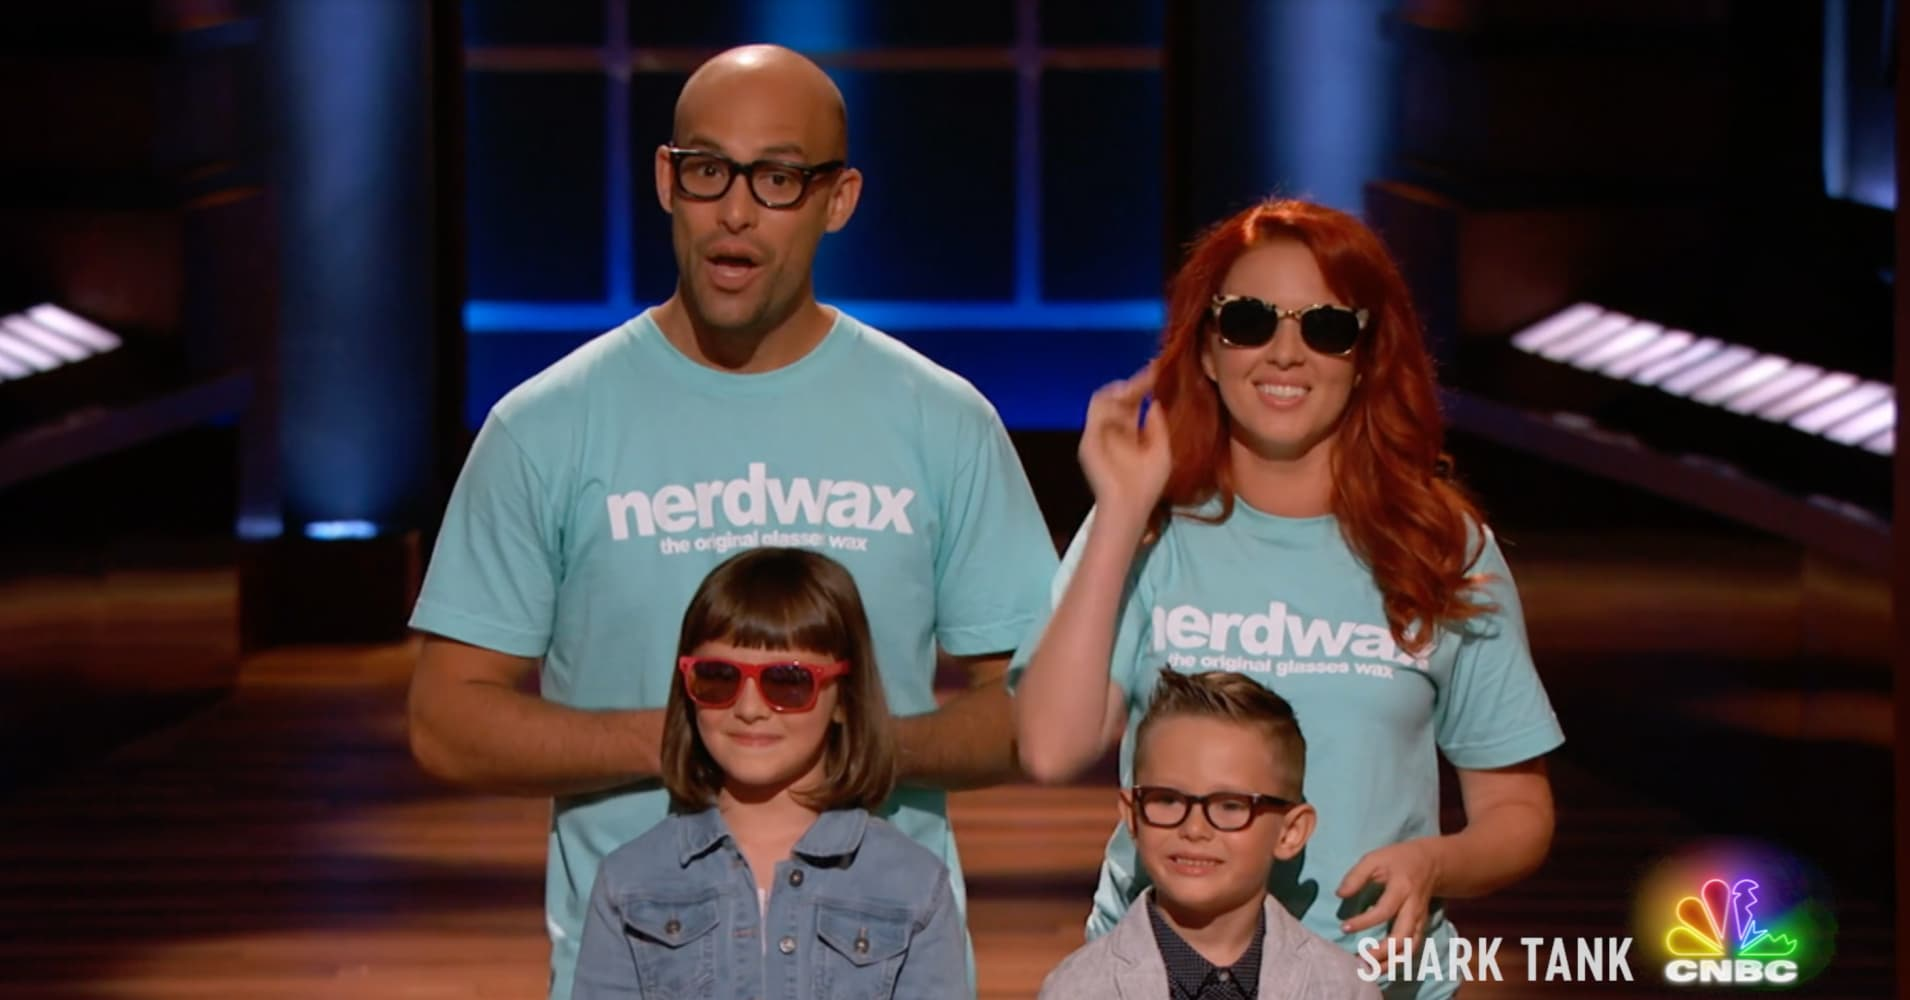 ad095a1140a The Nerdwax team wants to stop your glasses from sliding